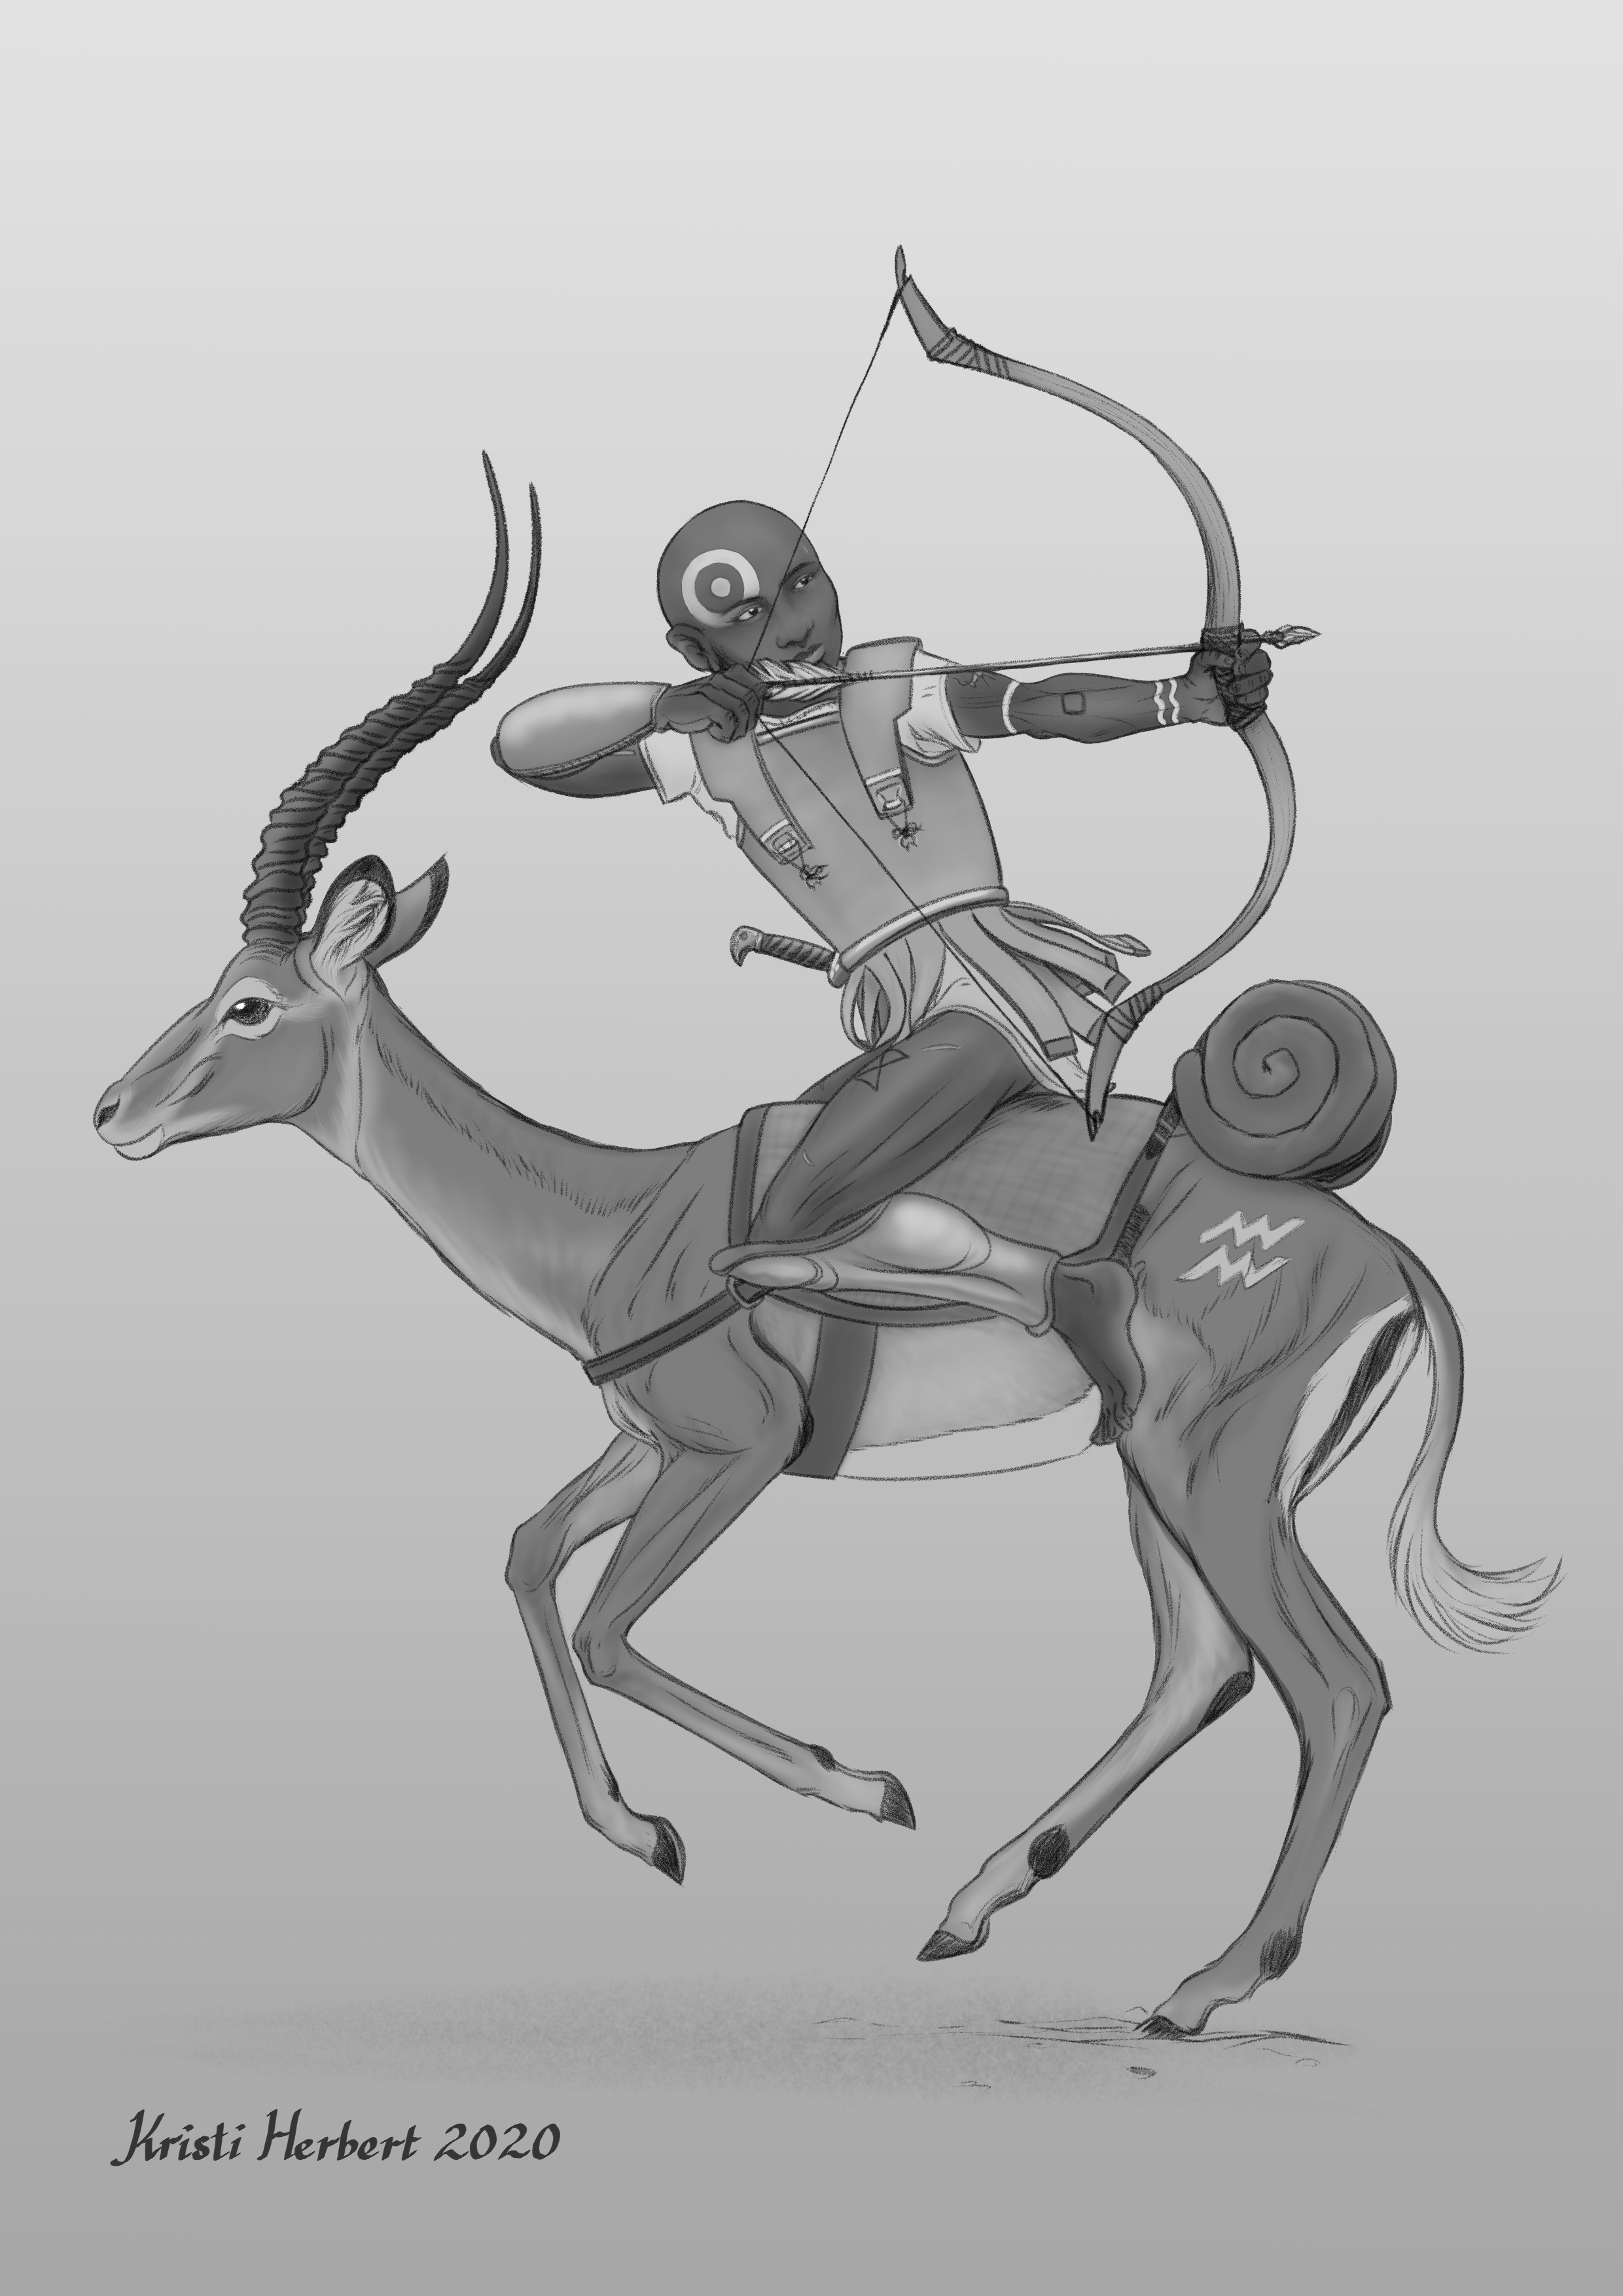 An archer rides on an impala. He is taking aim on an unseen target behind him.